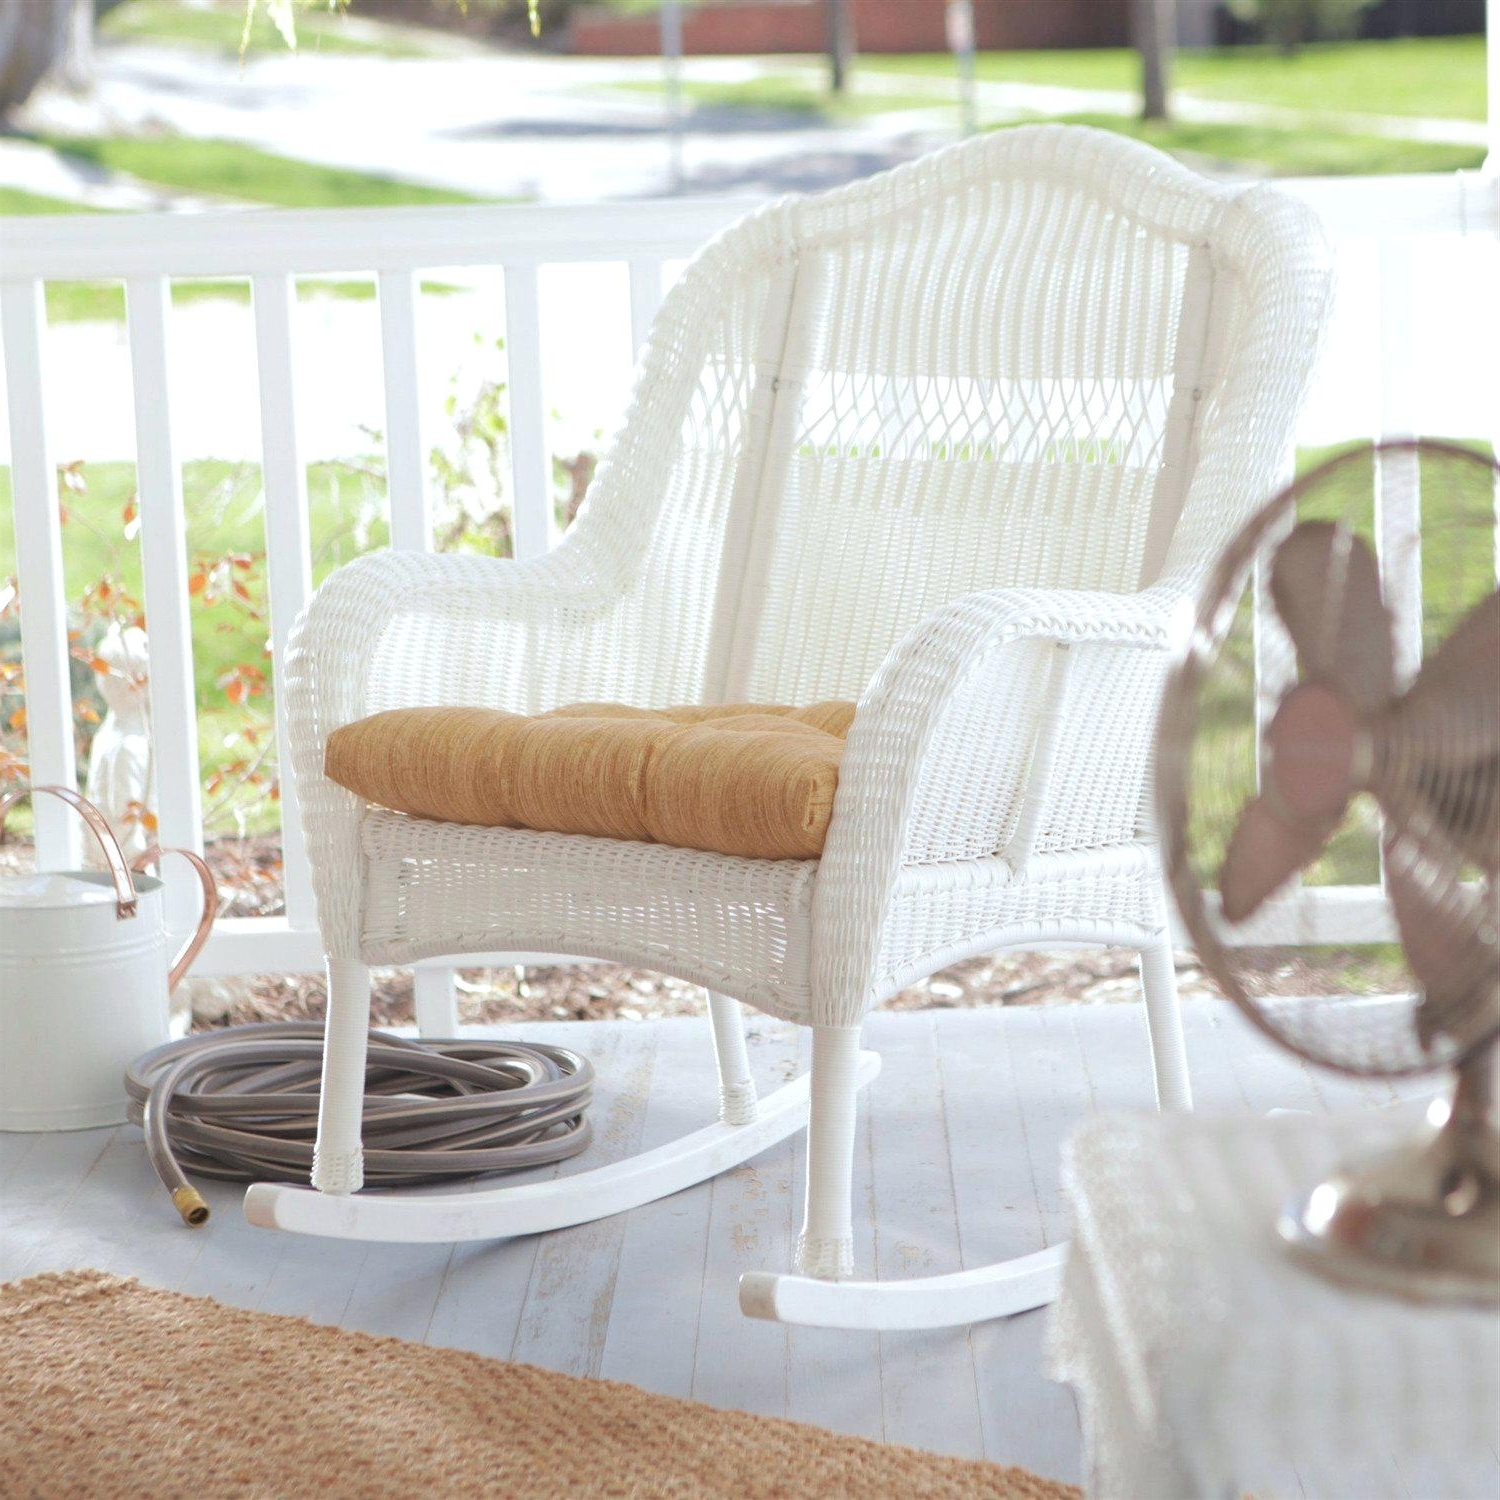 White Wicker Rocking Chair For Nursery Canada Uk – Concassage Pertaining To Trendy White Wicker Rocking Chair For Nursery (View 12 of 20)